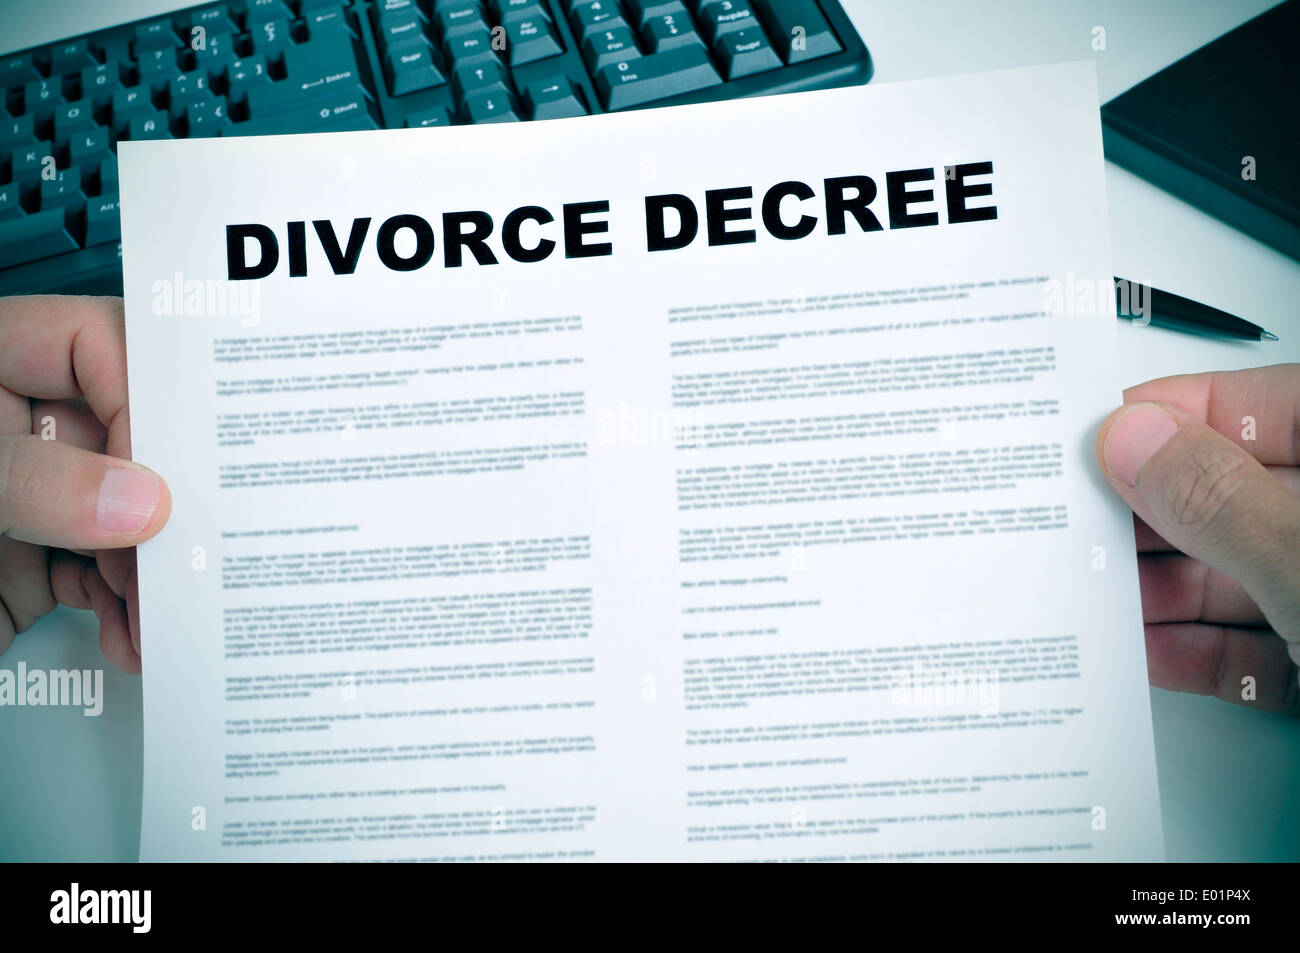 closeup of man hands holding a divorce decree on a desk - Stock Image